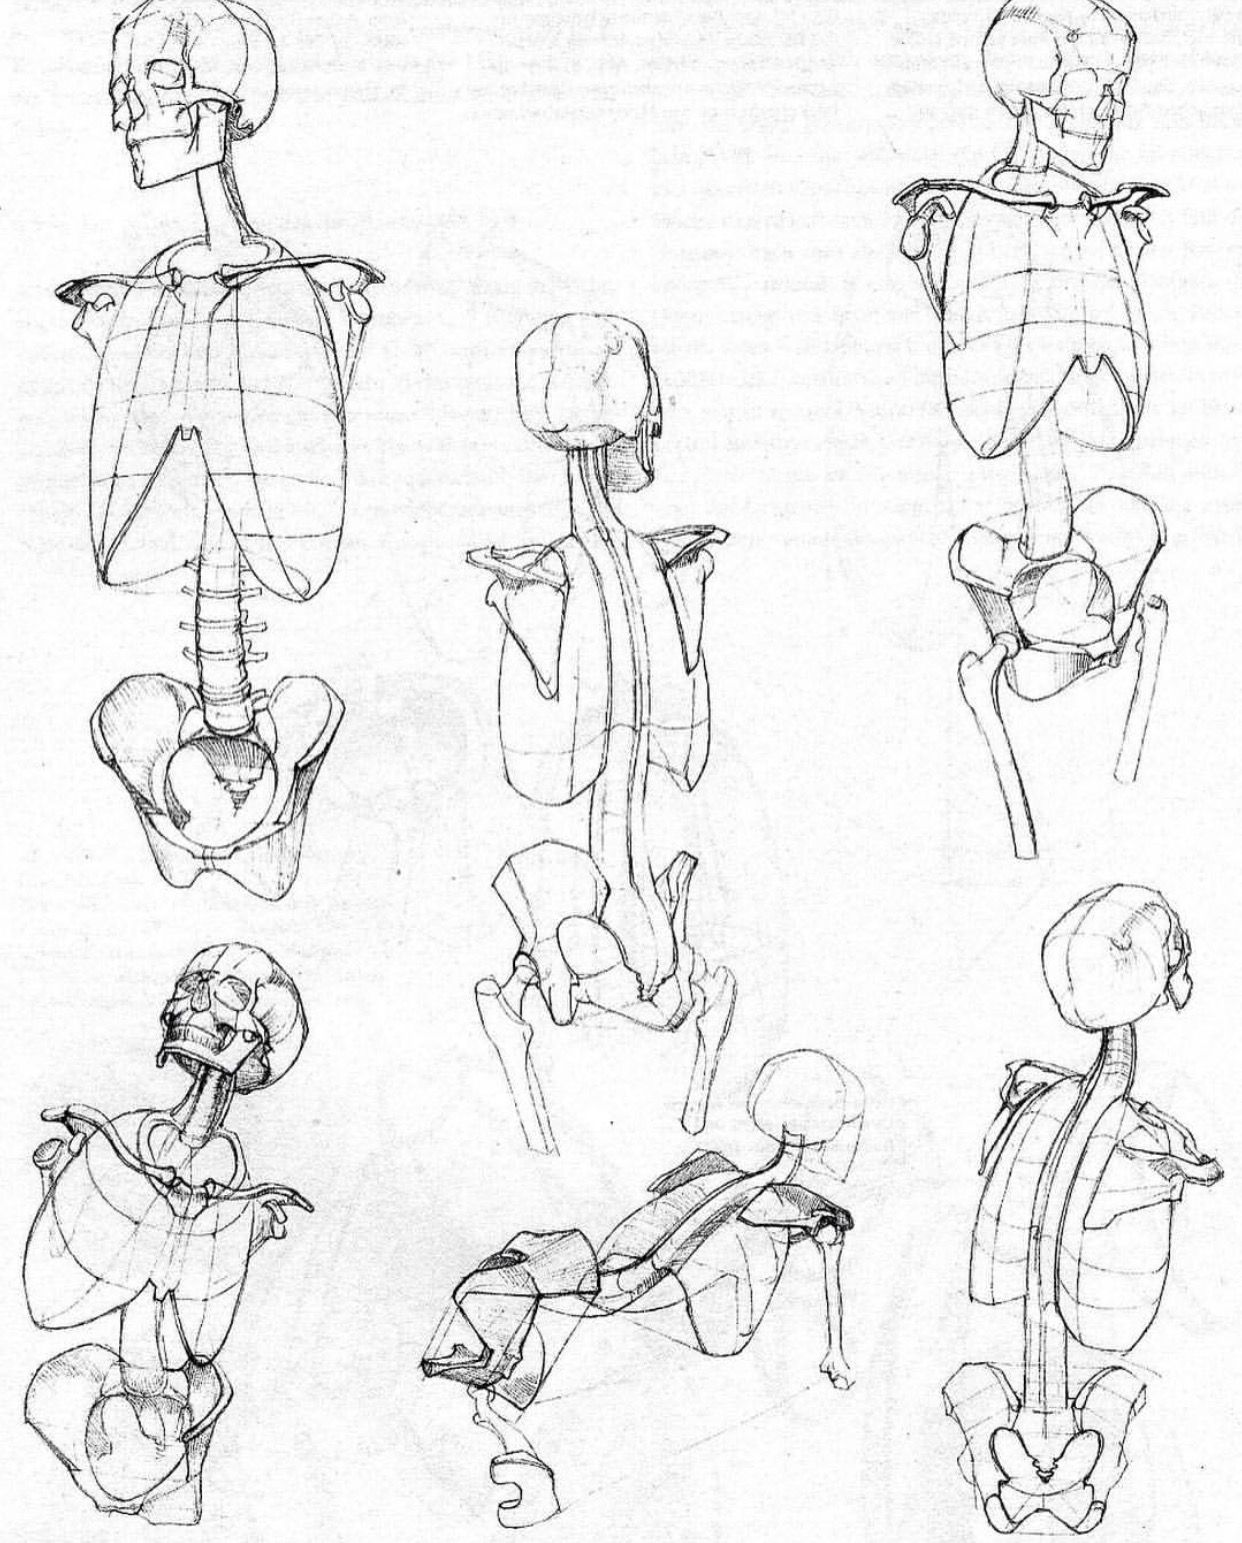 Pin By Jde On Art In 2018 Pinterest Drawings Anatomy Drawing